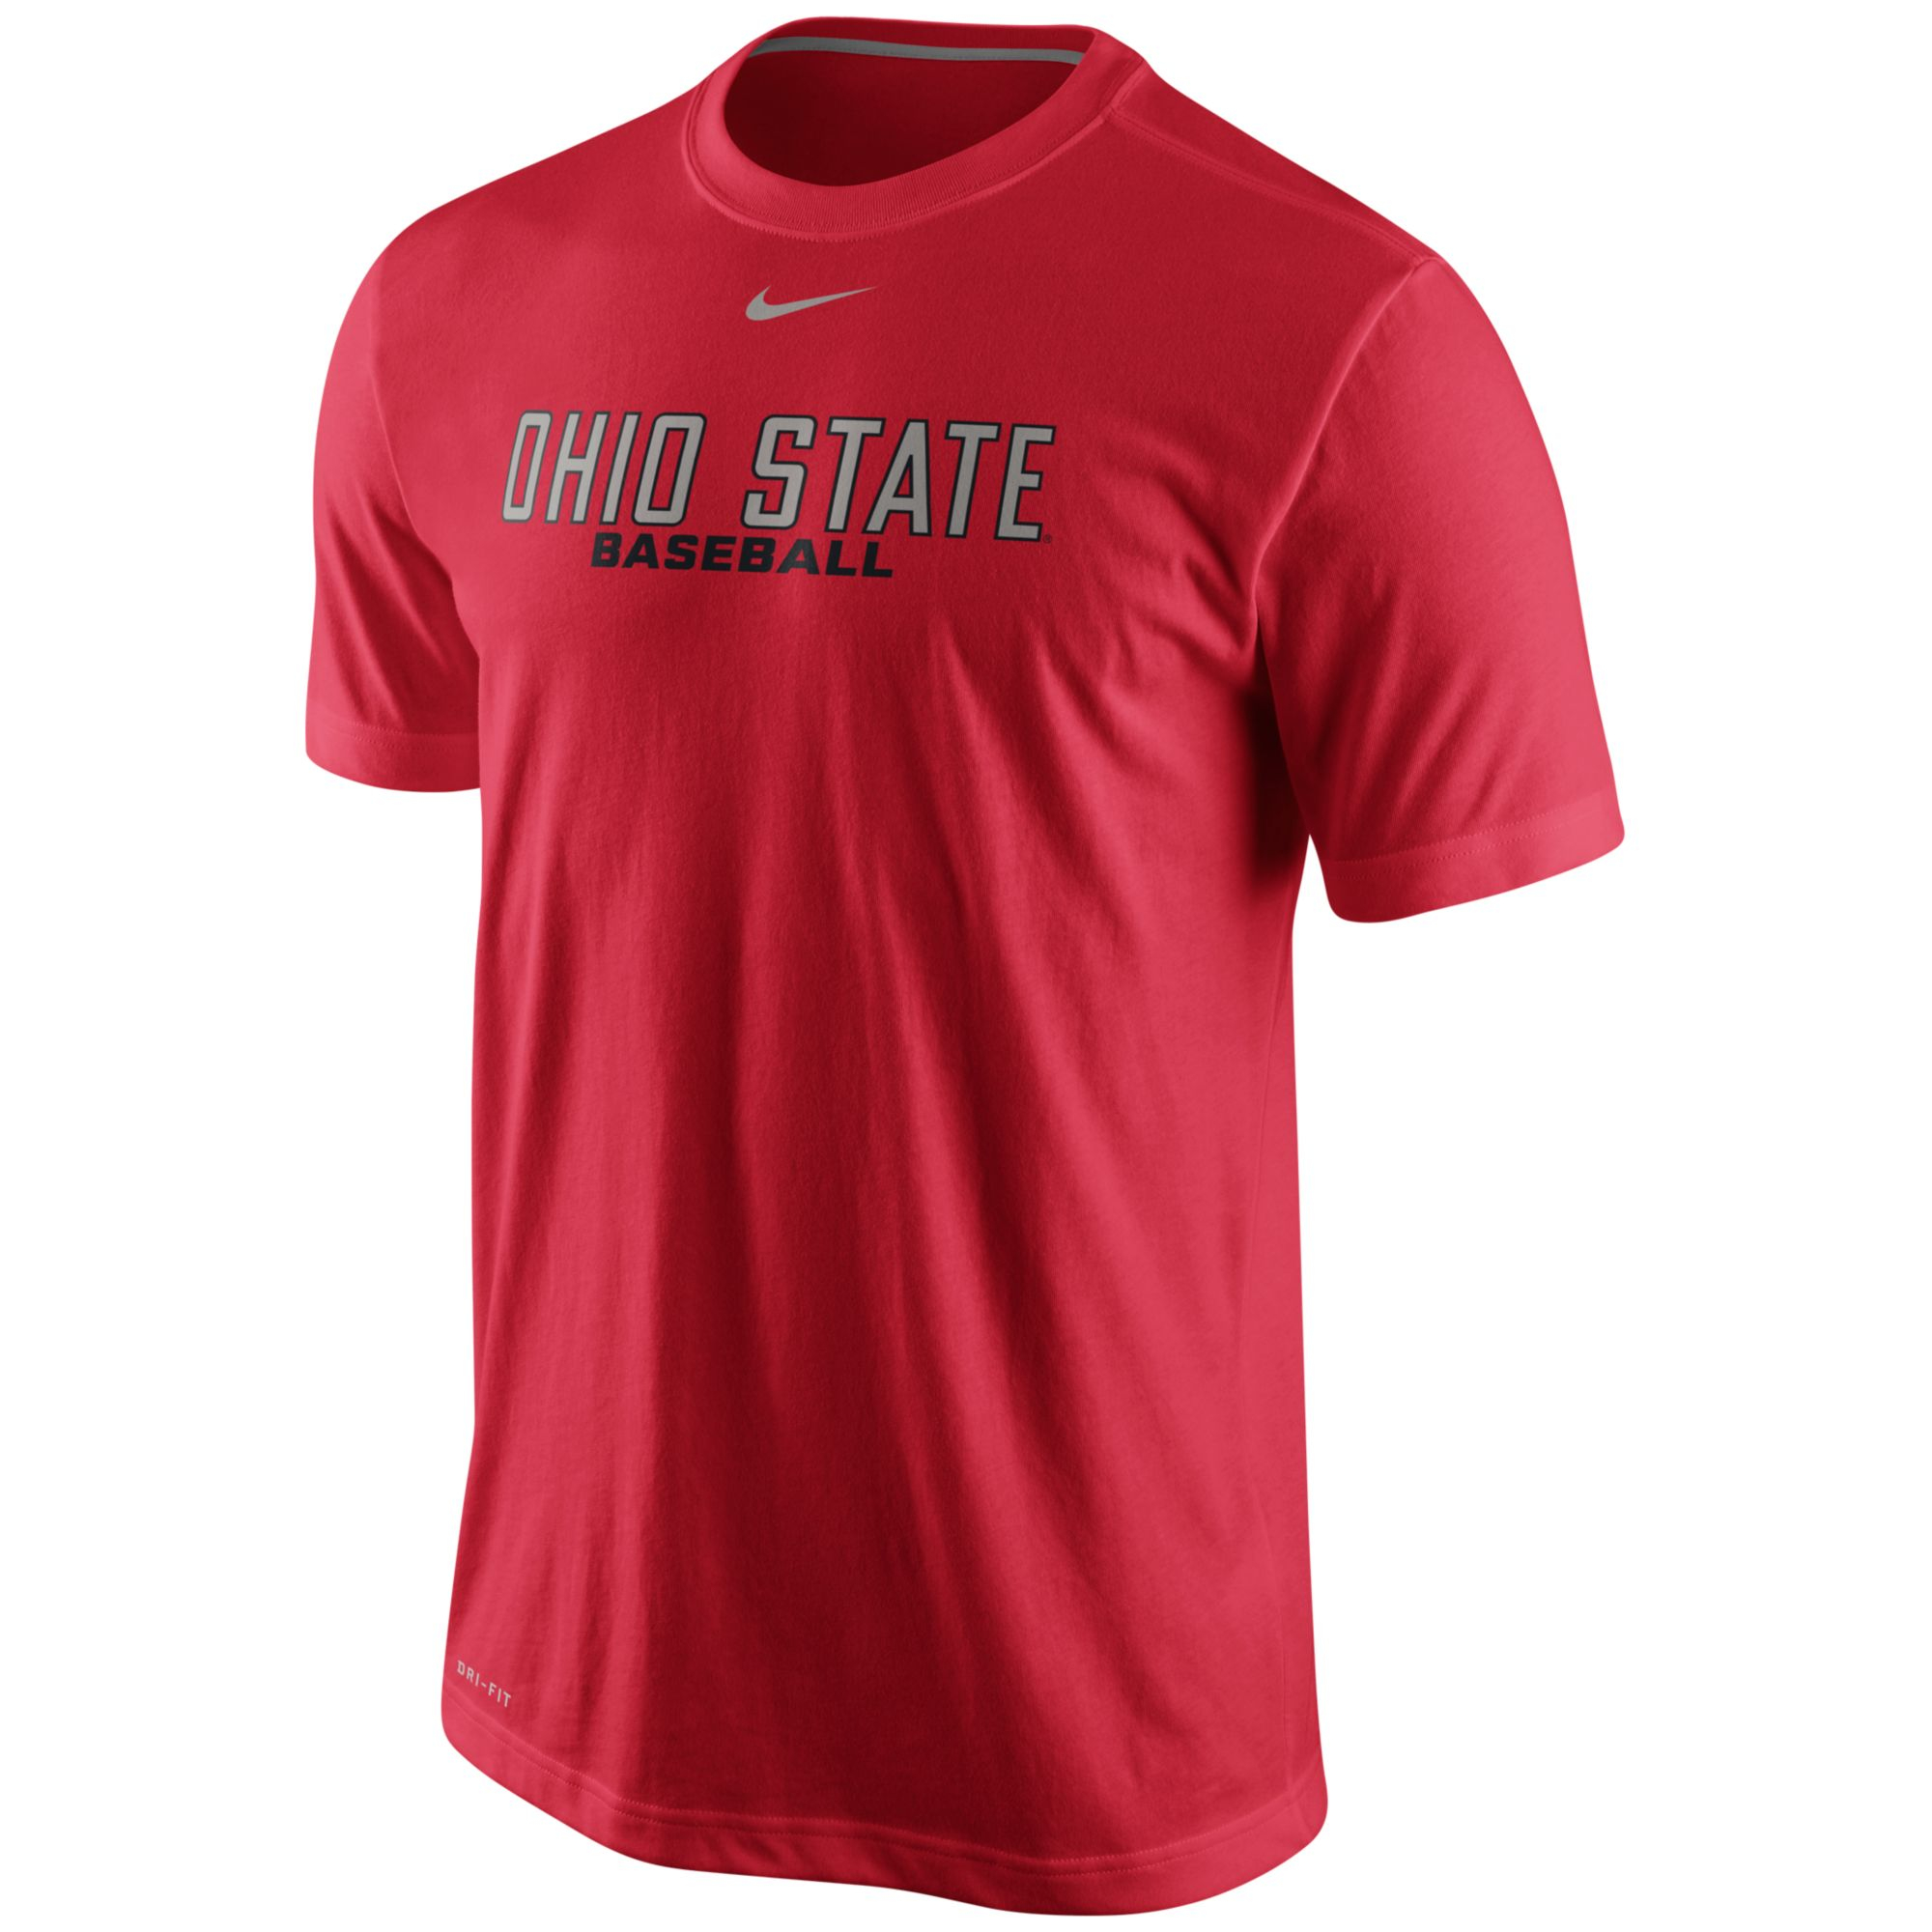 Nike men 39 s ohio state buckeyes baseball dri fit practice t for Ohio state shirts mens